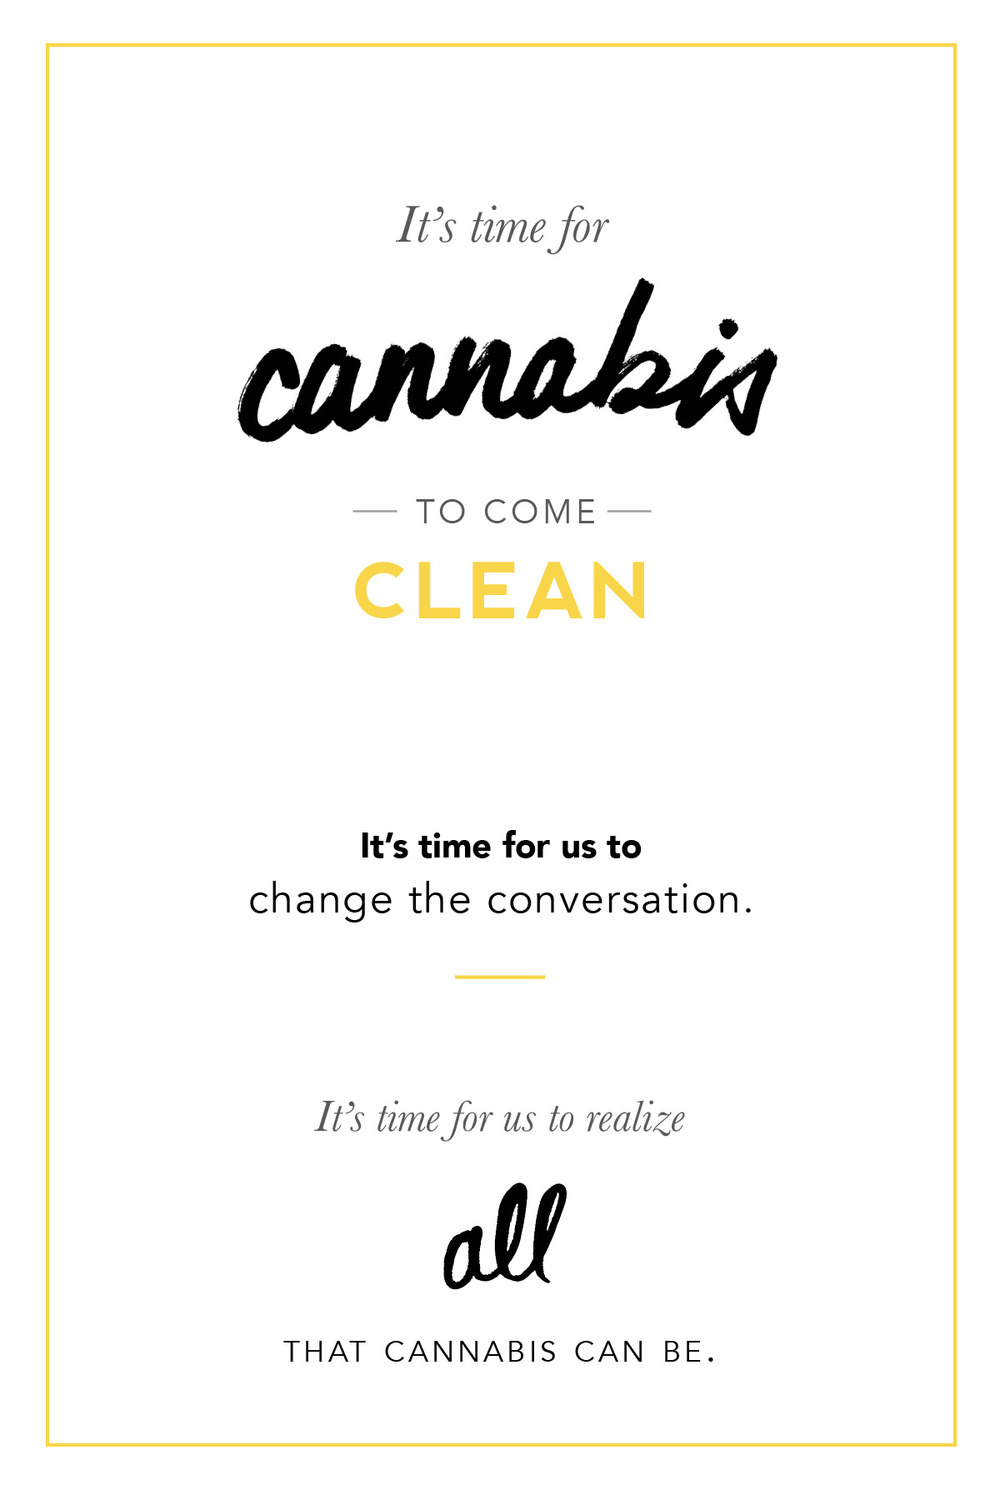 CannabisCleanse-pagesasimages10.jpg